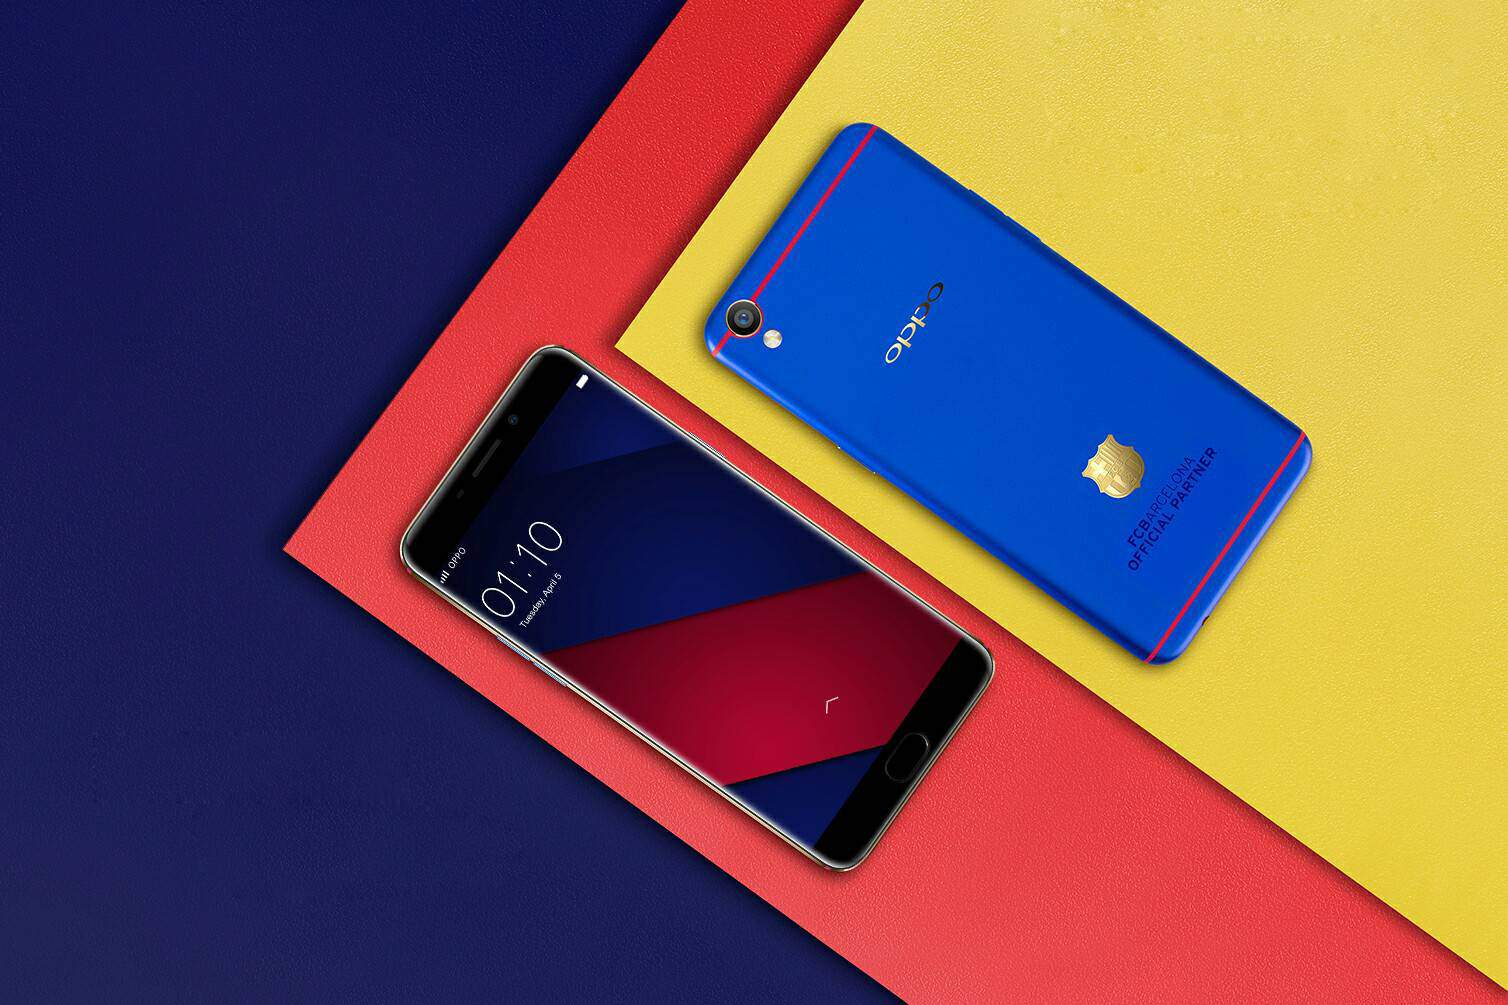 OPPO F1 Plus FC Barcelona Edition_2